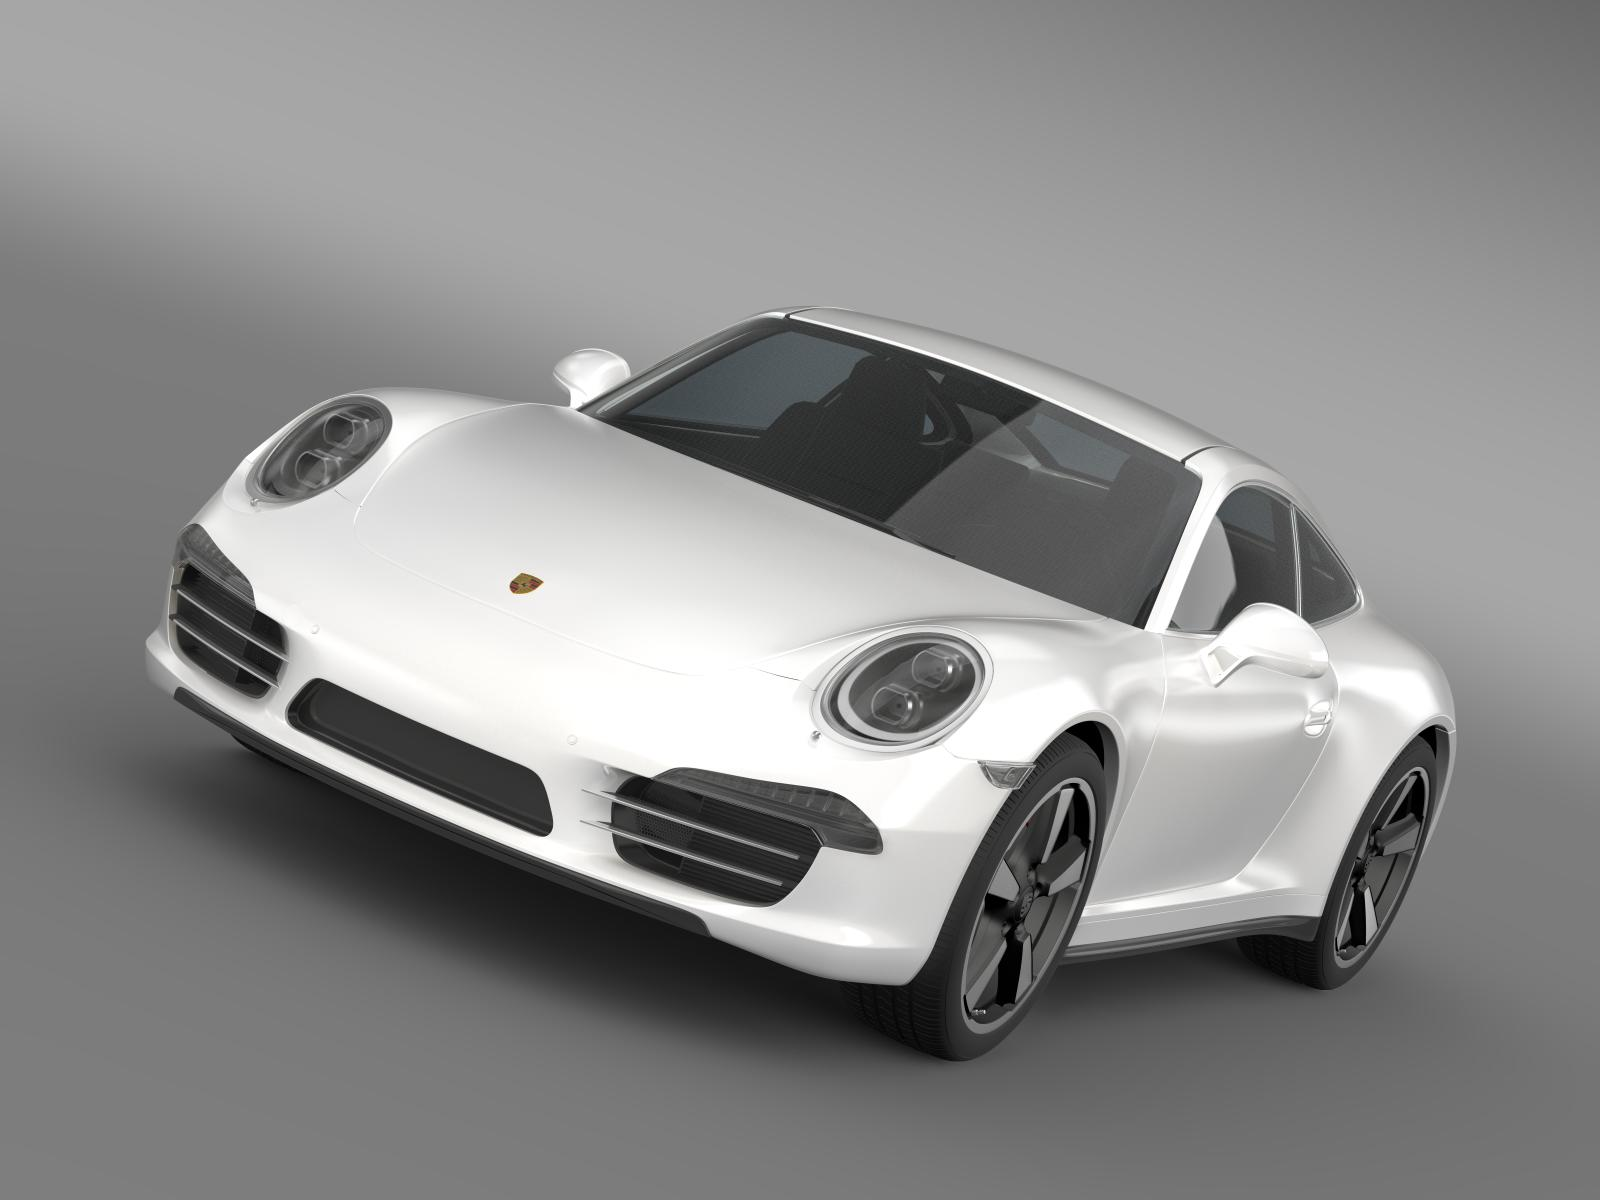 porsche 911 50 year edition (2013) 3d model 3ds max fbx c4d lwo ma mb hrc xsi obj 154139